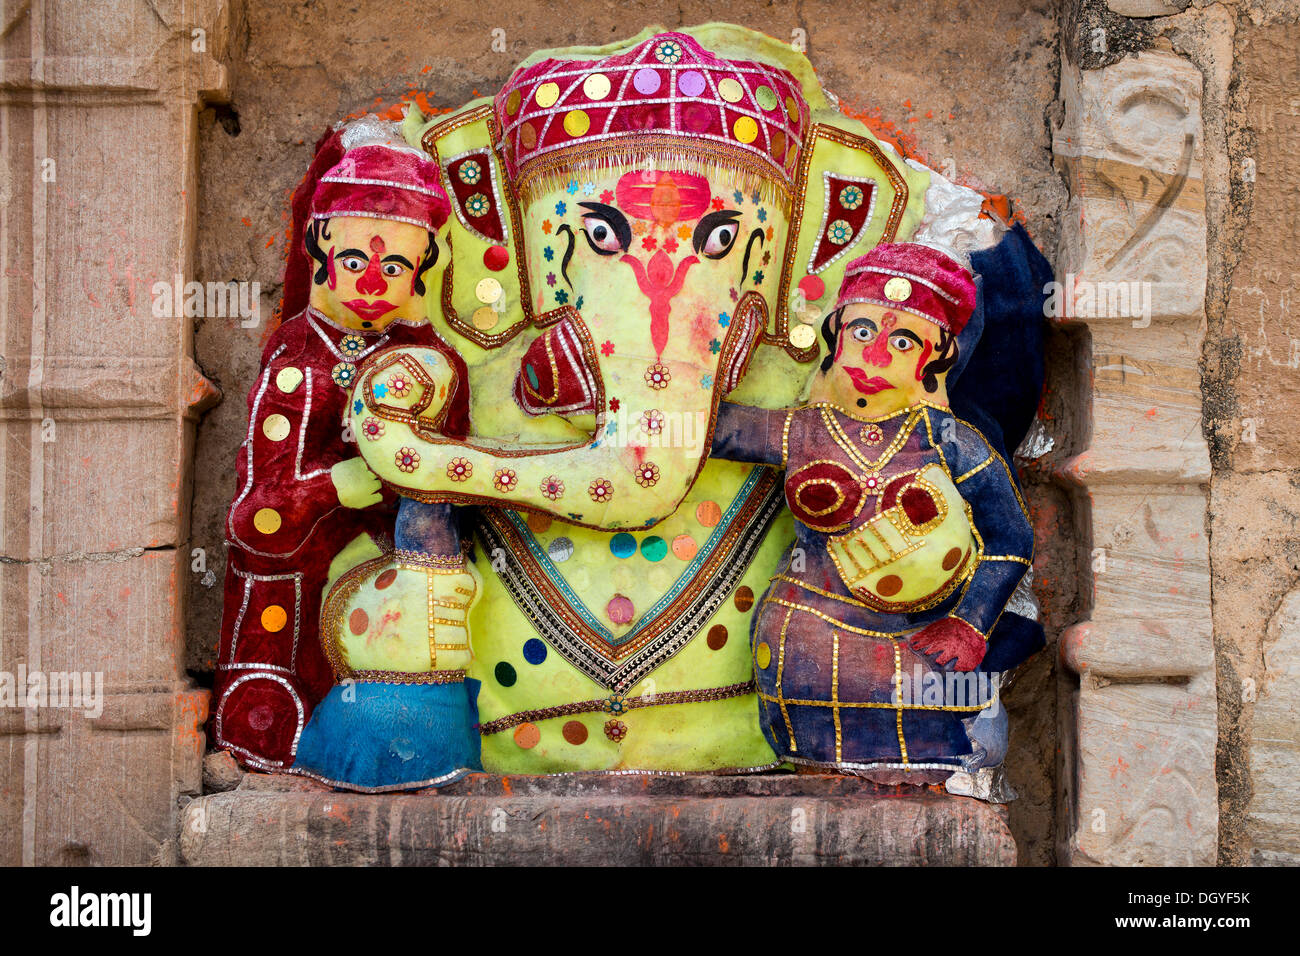 Shrine, popular portrayal of the elephant-headed god Ganesha, Chittorgarh, Rajasthan, India - Stock Image